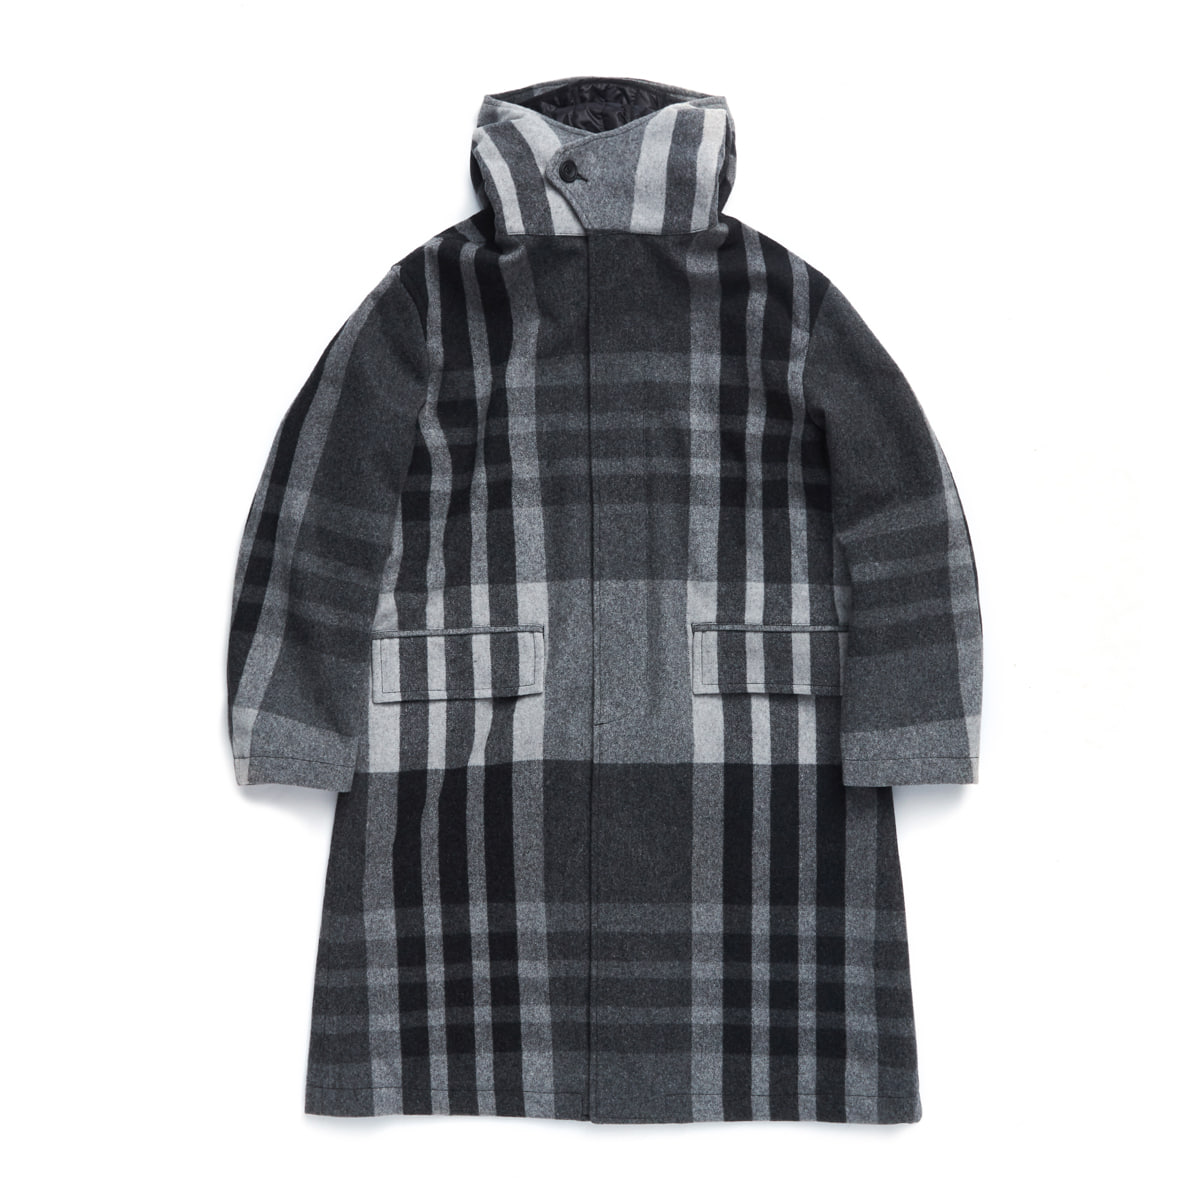 언어펙티드 HOODED COAT (Grey check)